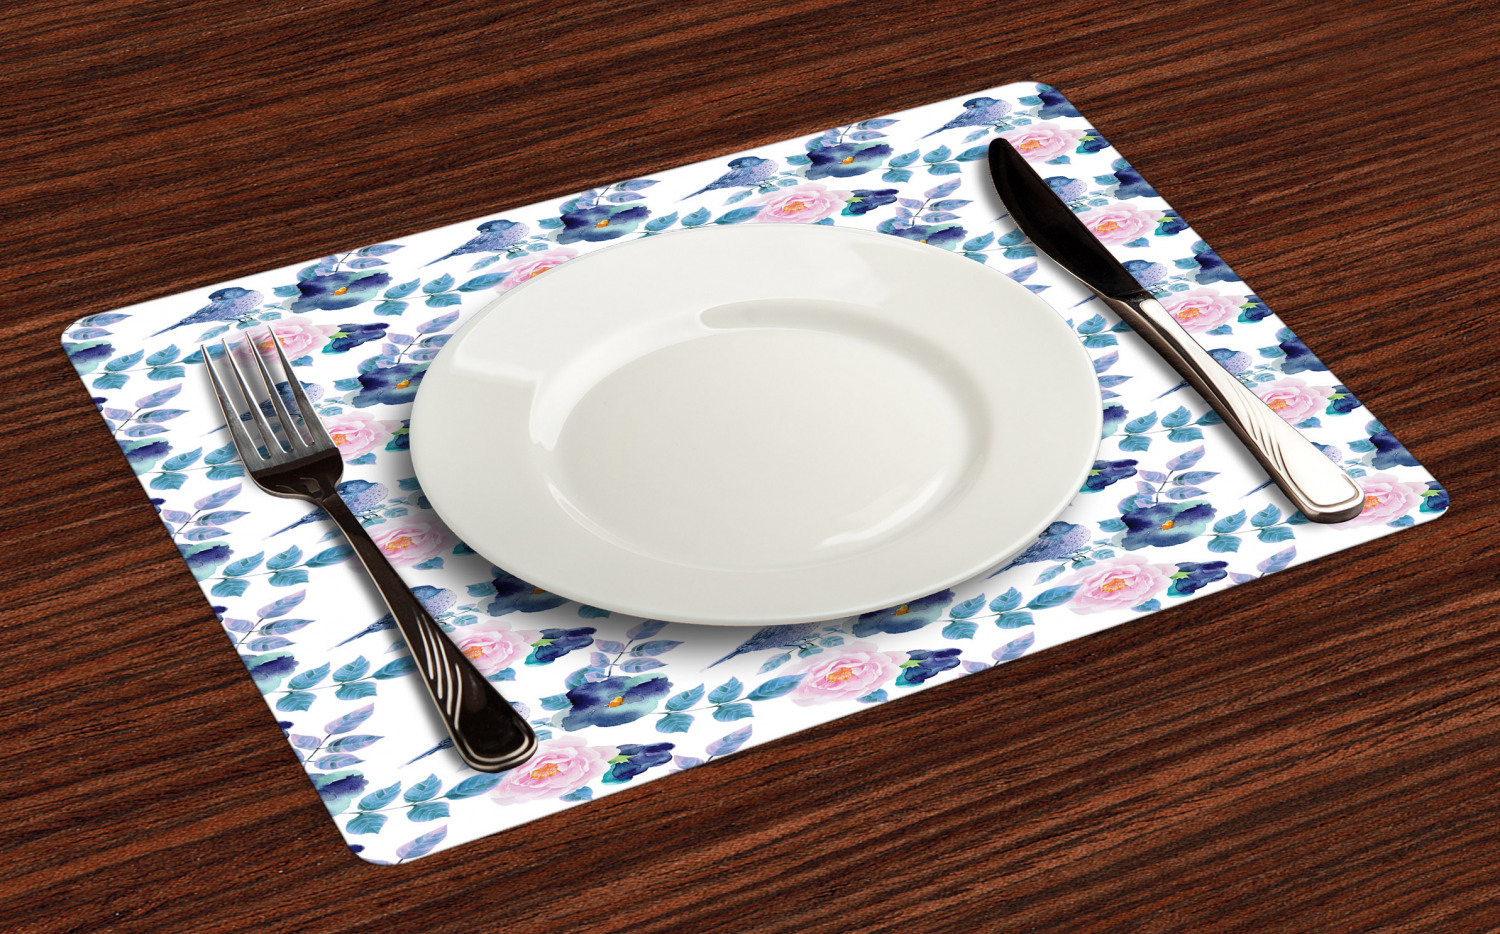 Ambesonne-Flower-Pattern-Placemat-Set-of-4-Fabric-Place-Mats-for-Table-Decor thumbnail 29